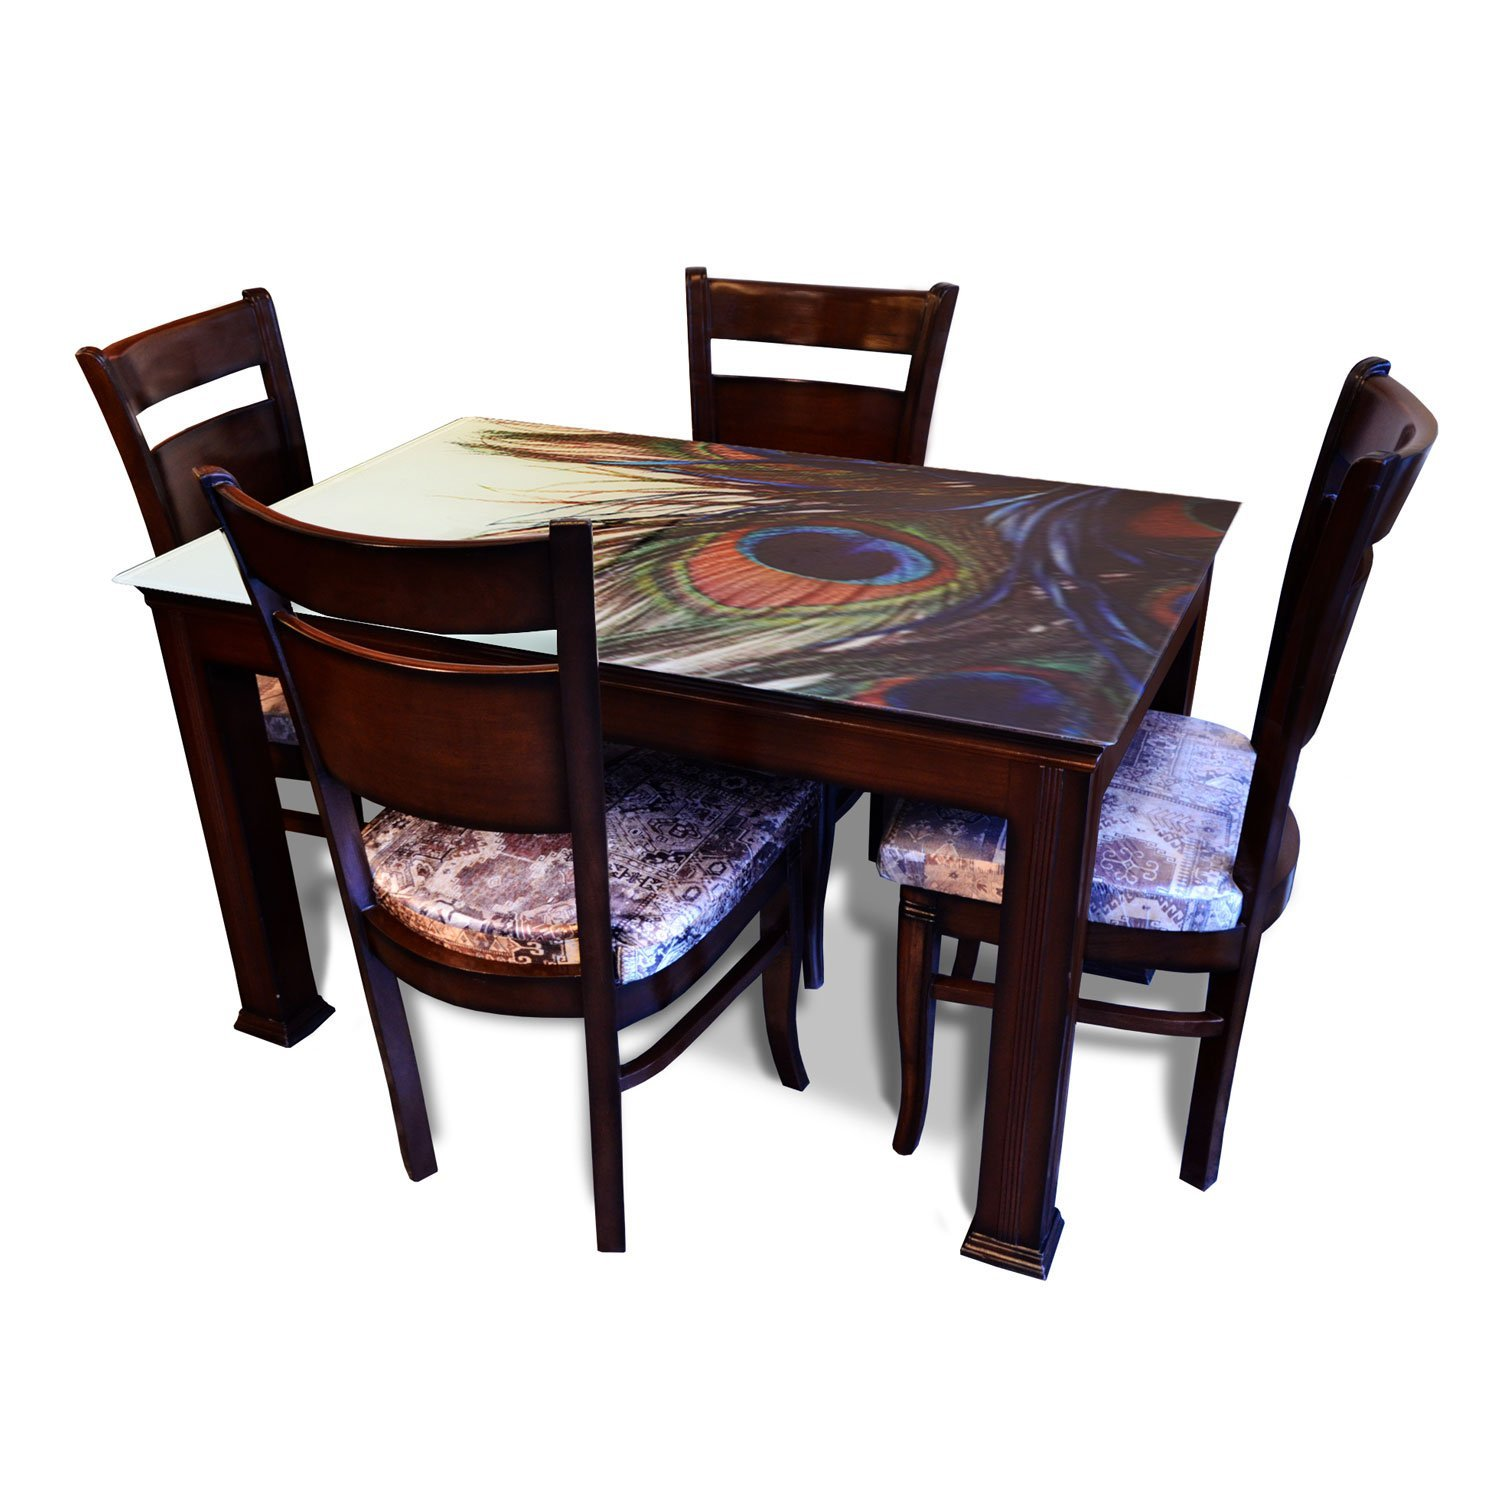 Affordable Classic 4 Seater Dining Table Set Glass Top Brown Chairs Pharneechar Online Furniture Store Delhi NCR